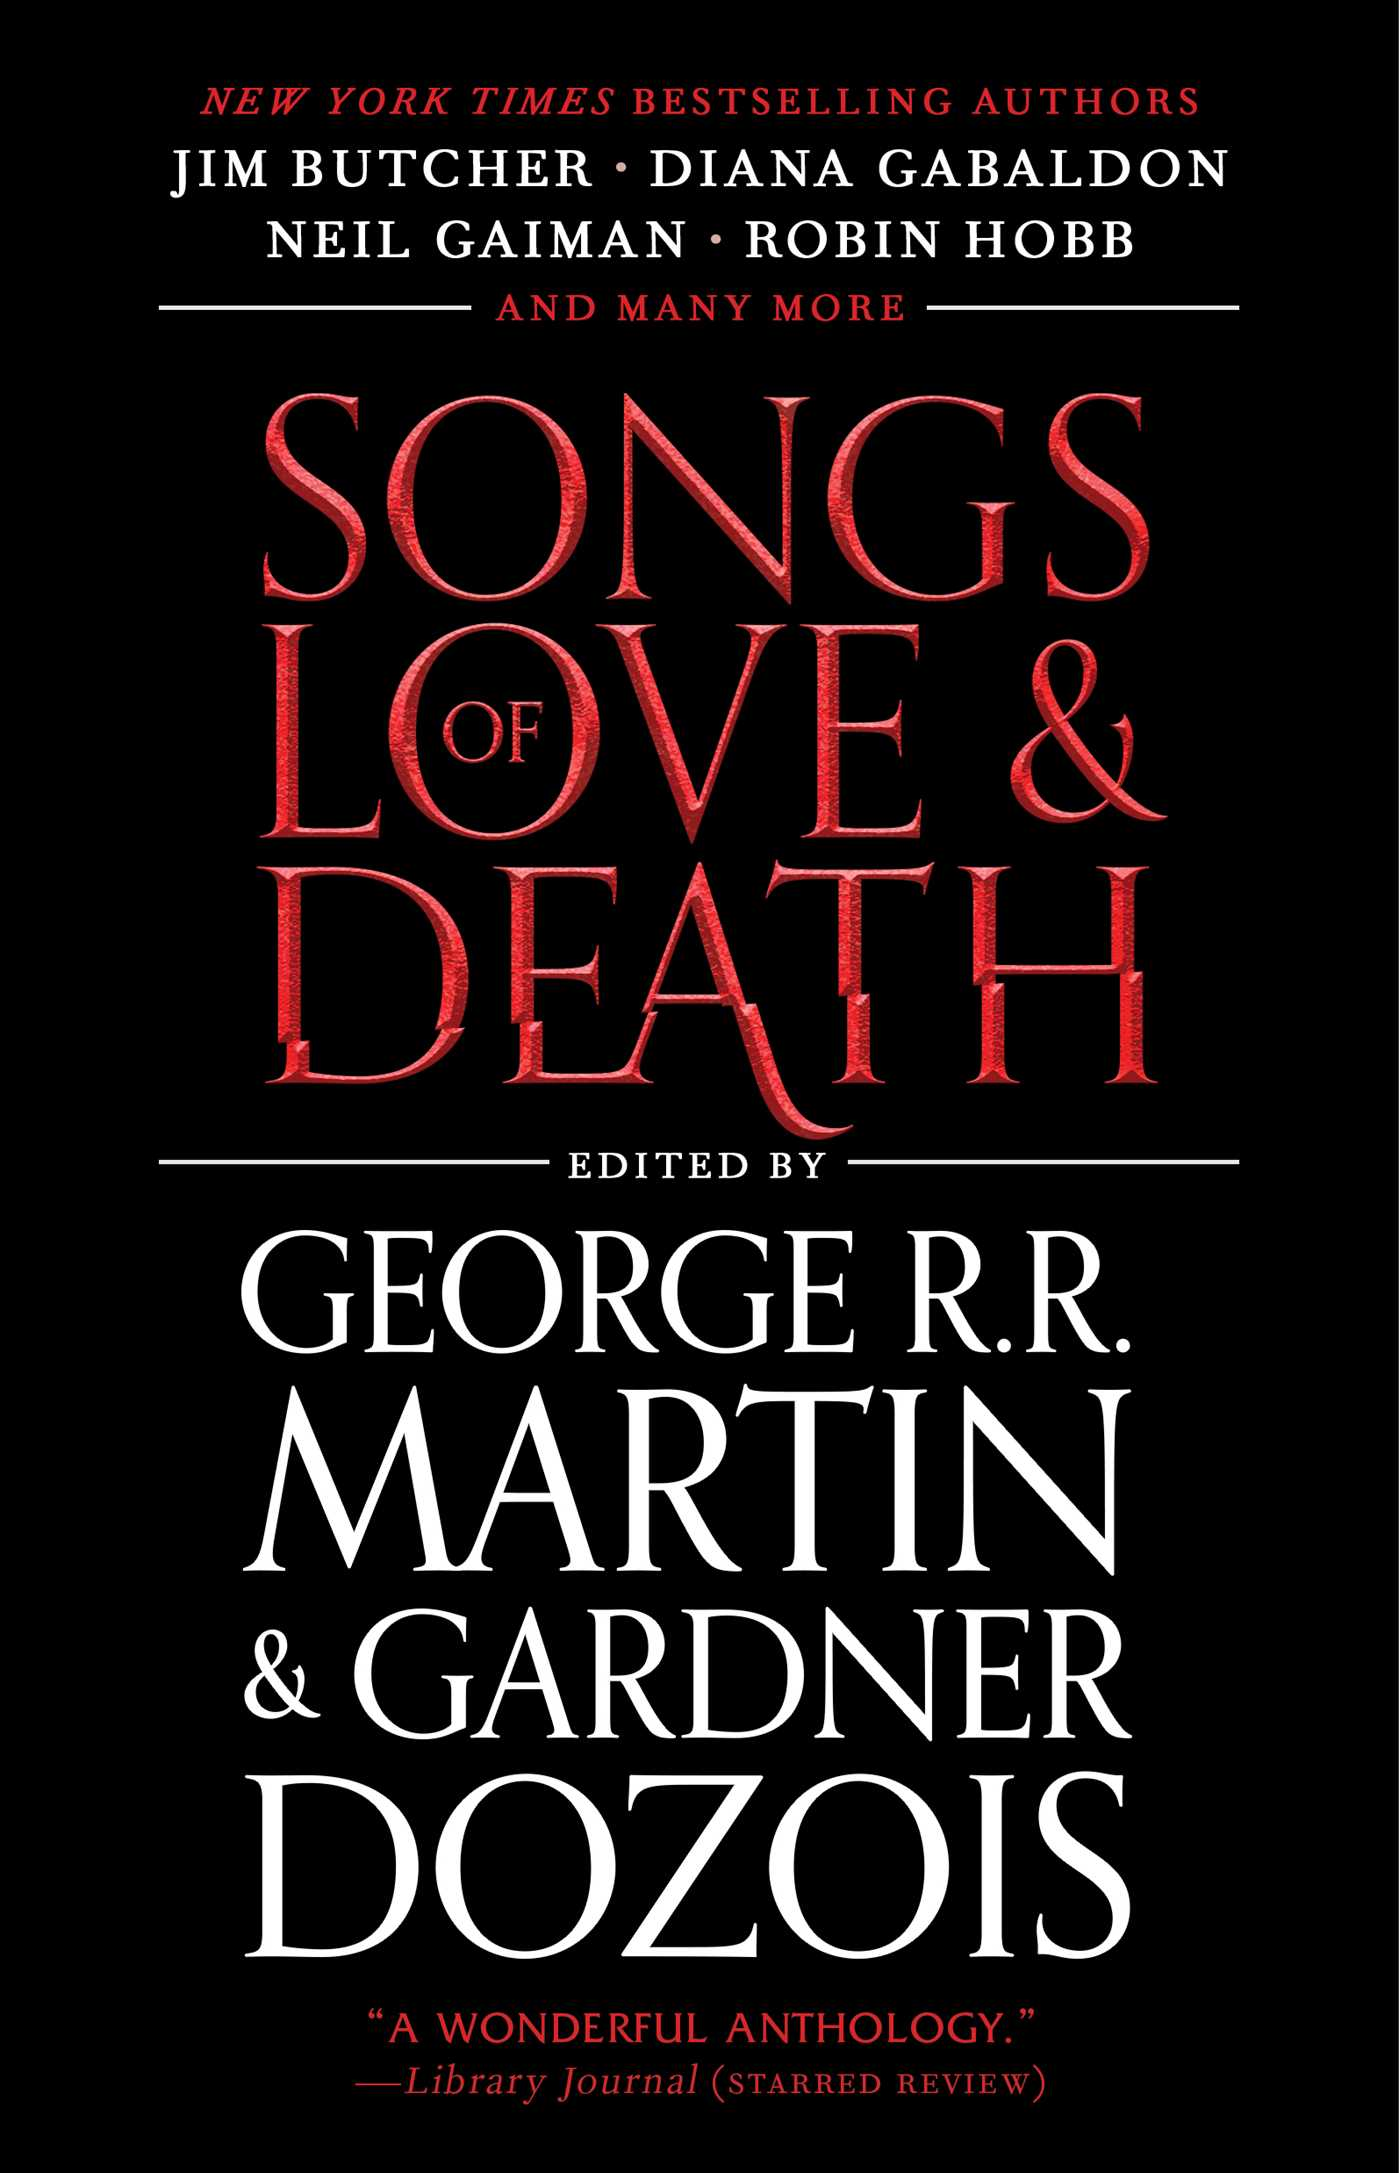 Cover art for the 2020 Songs of Love and Death paperback